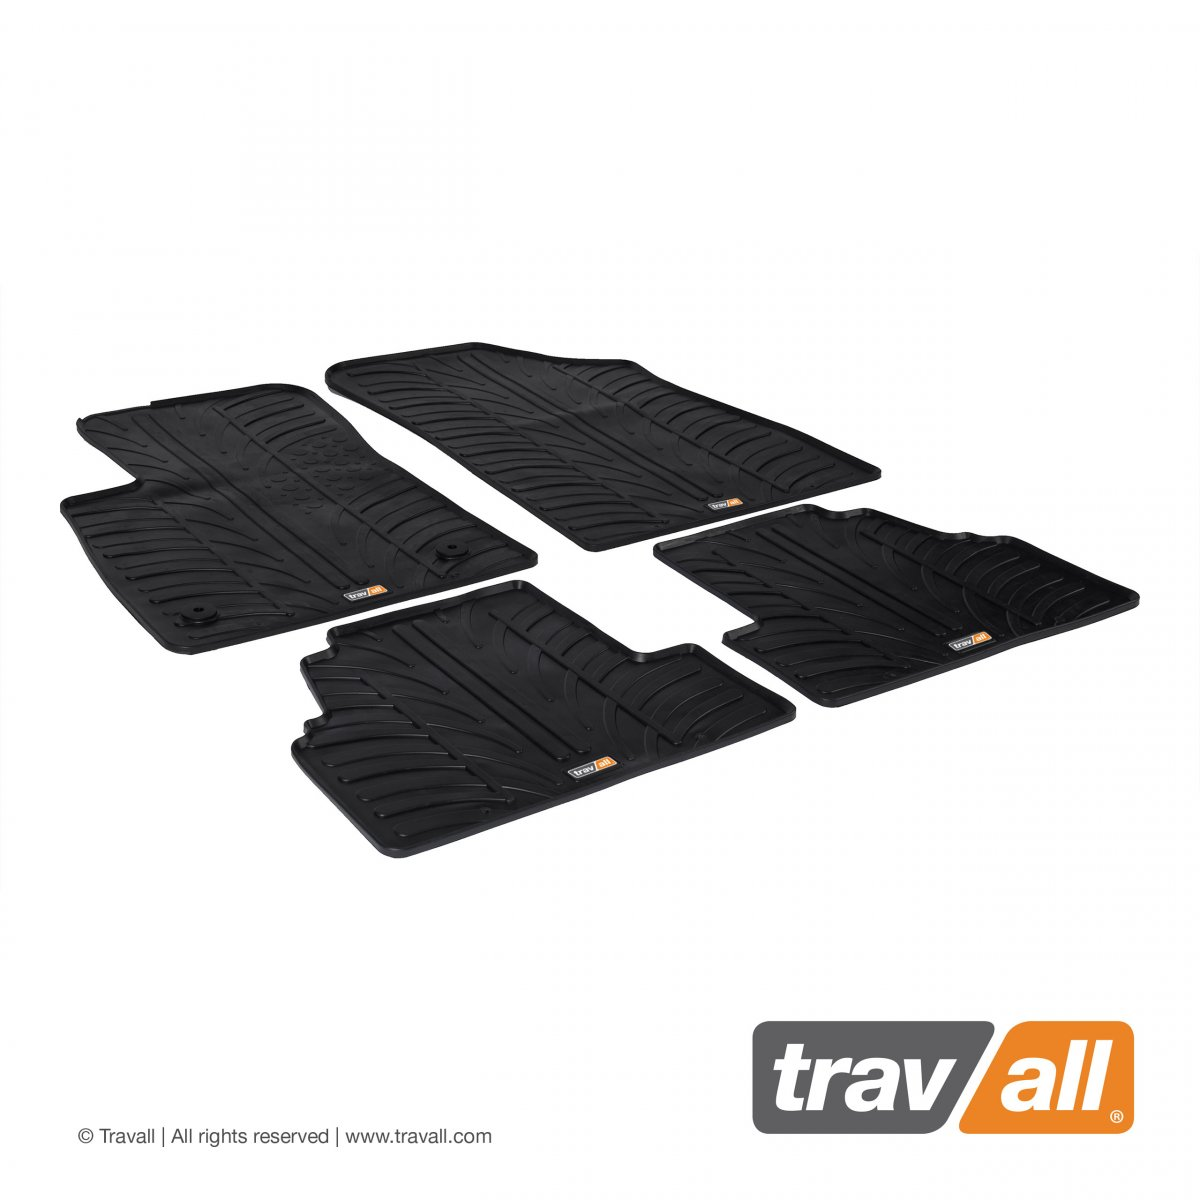 Travall® MATS for Opel/Vauxhall Mokka (2012 >) / Chevrolet Trax (2013 >)